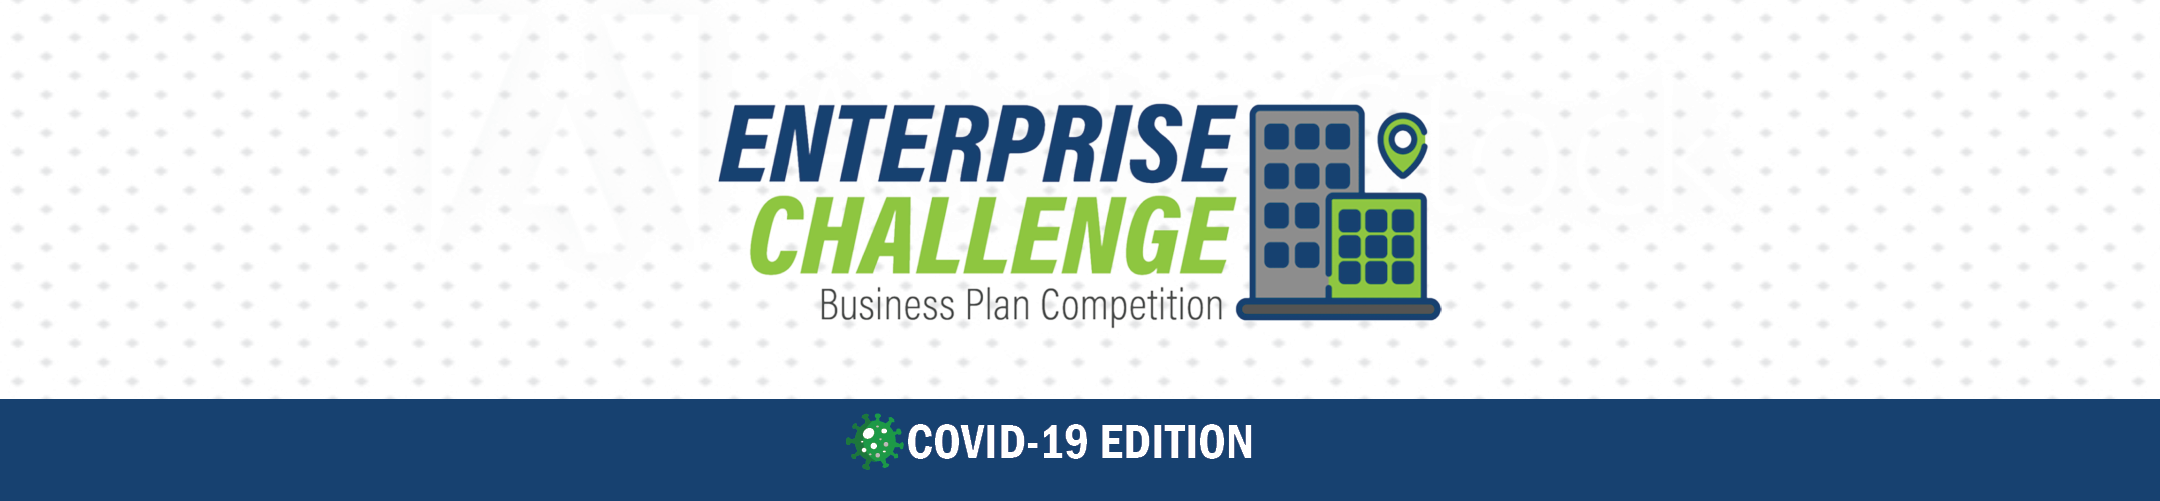 Enterprise-Challenge-YCDA-Website-Banner-2021-6 edit